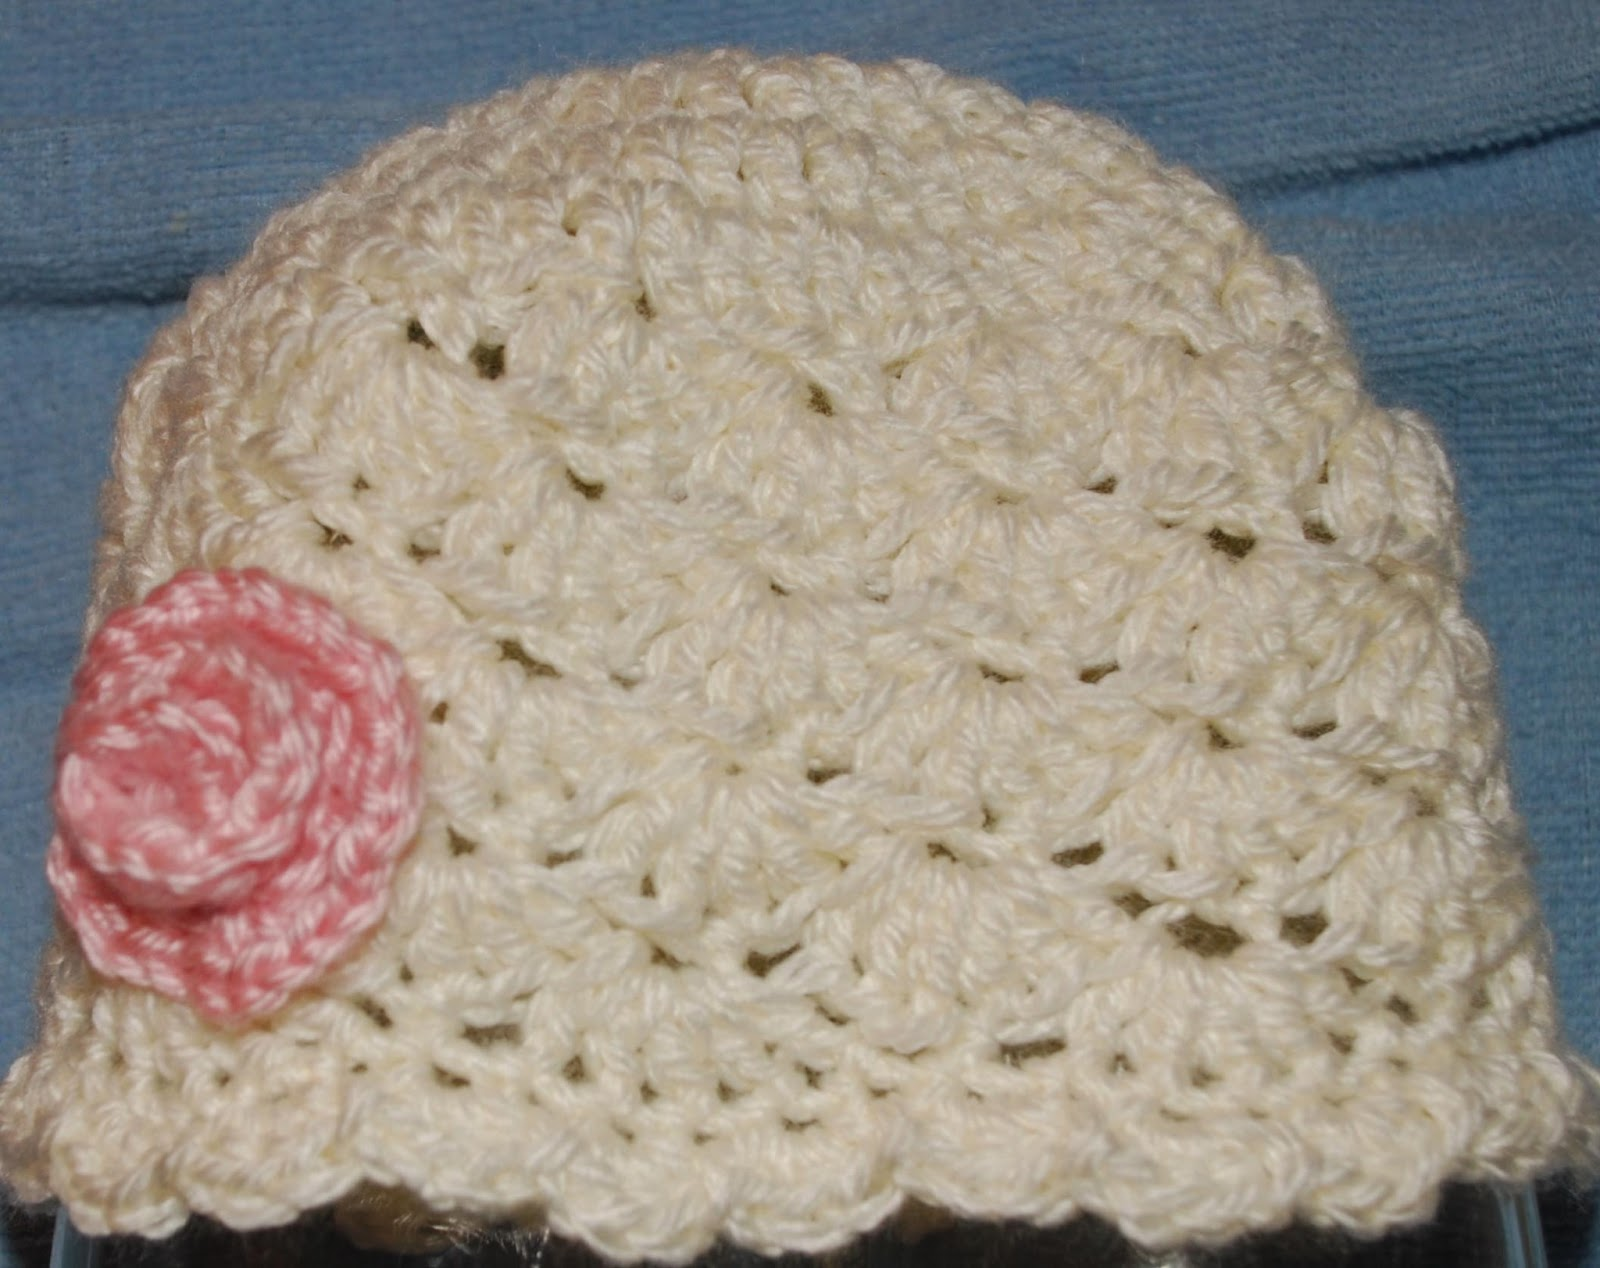 Amys Crochet Creative Creations: Crochet Shell Newborn Hat